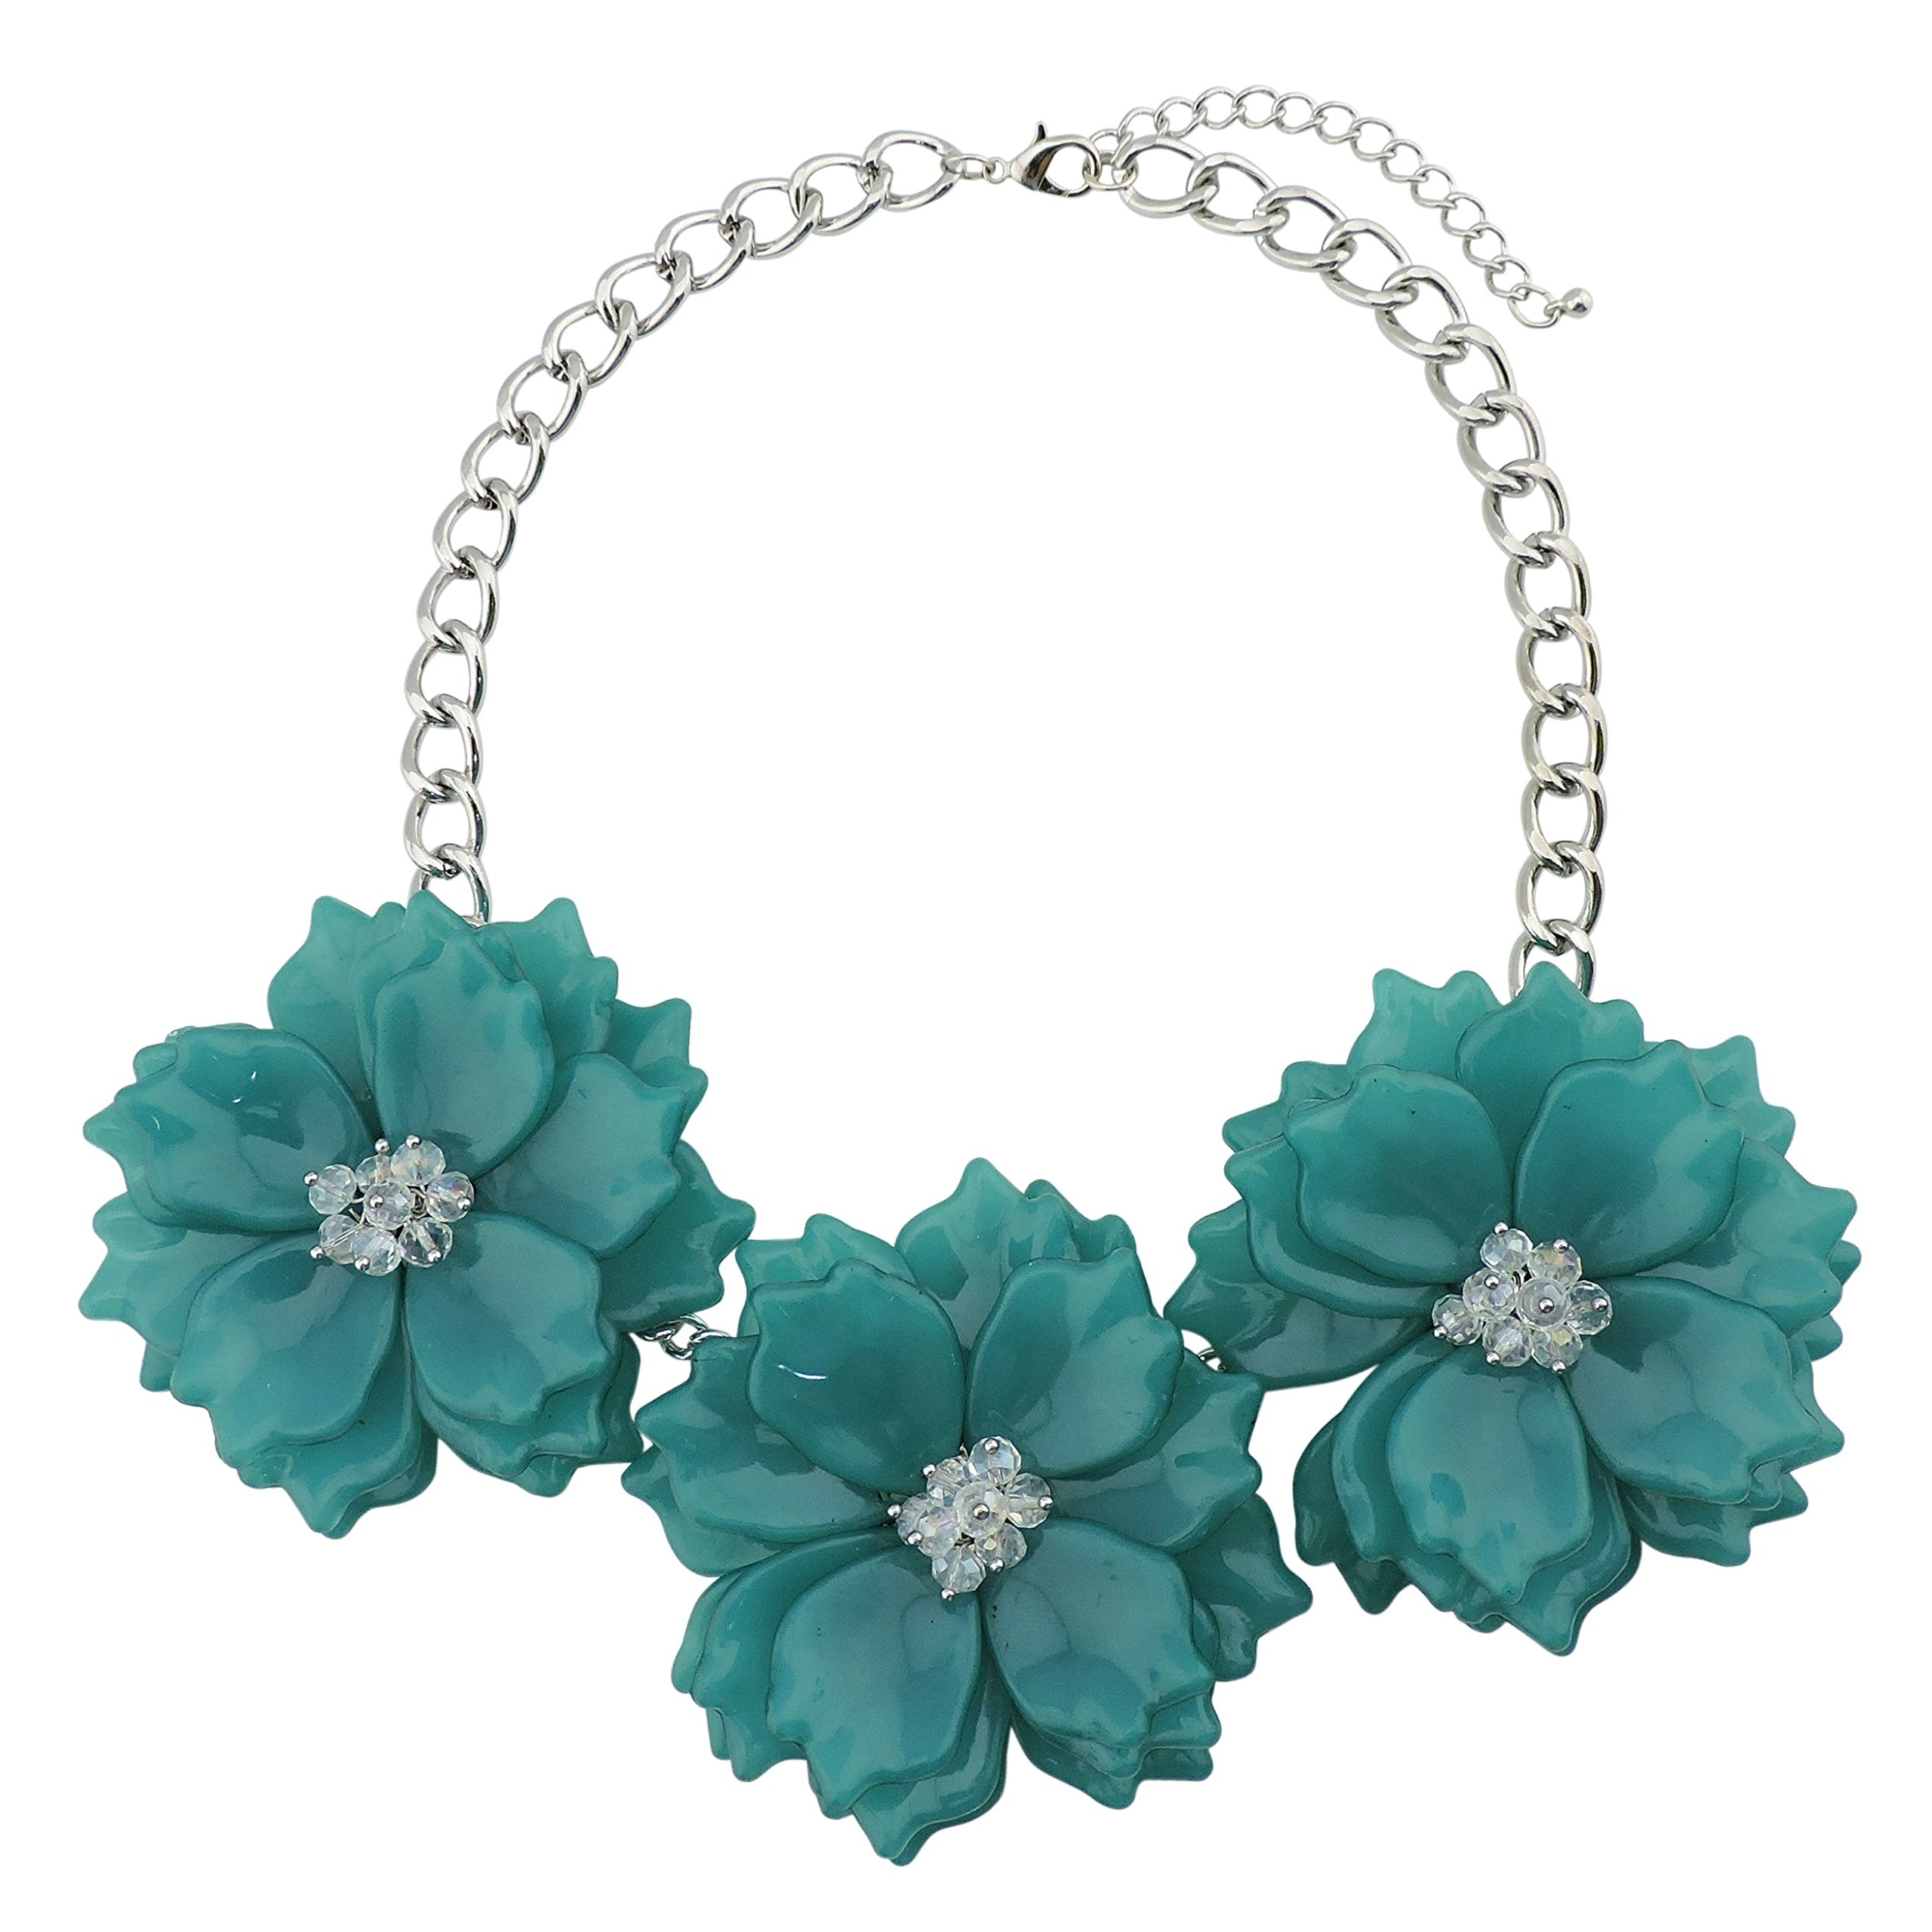 Bocar Statement Chunky Flower Necklace Bib Collar Jewelry Set for Women (NK-10466-Teal)